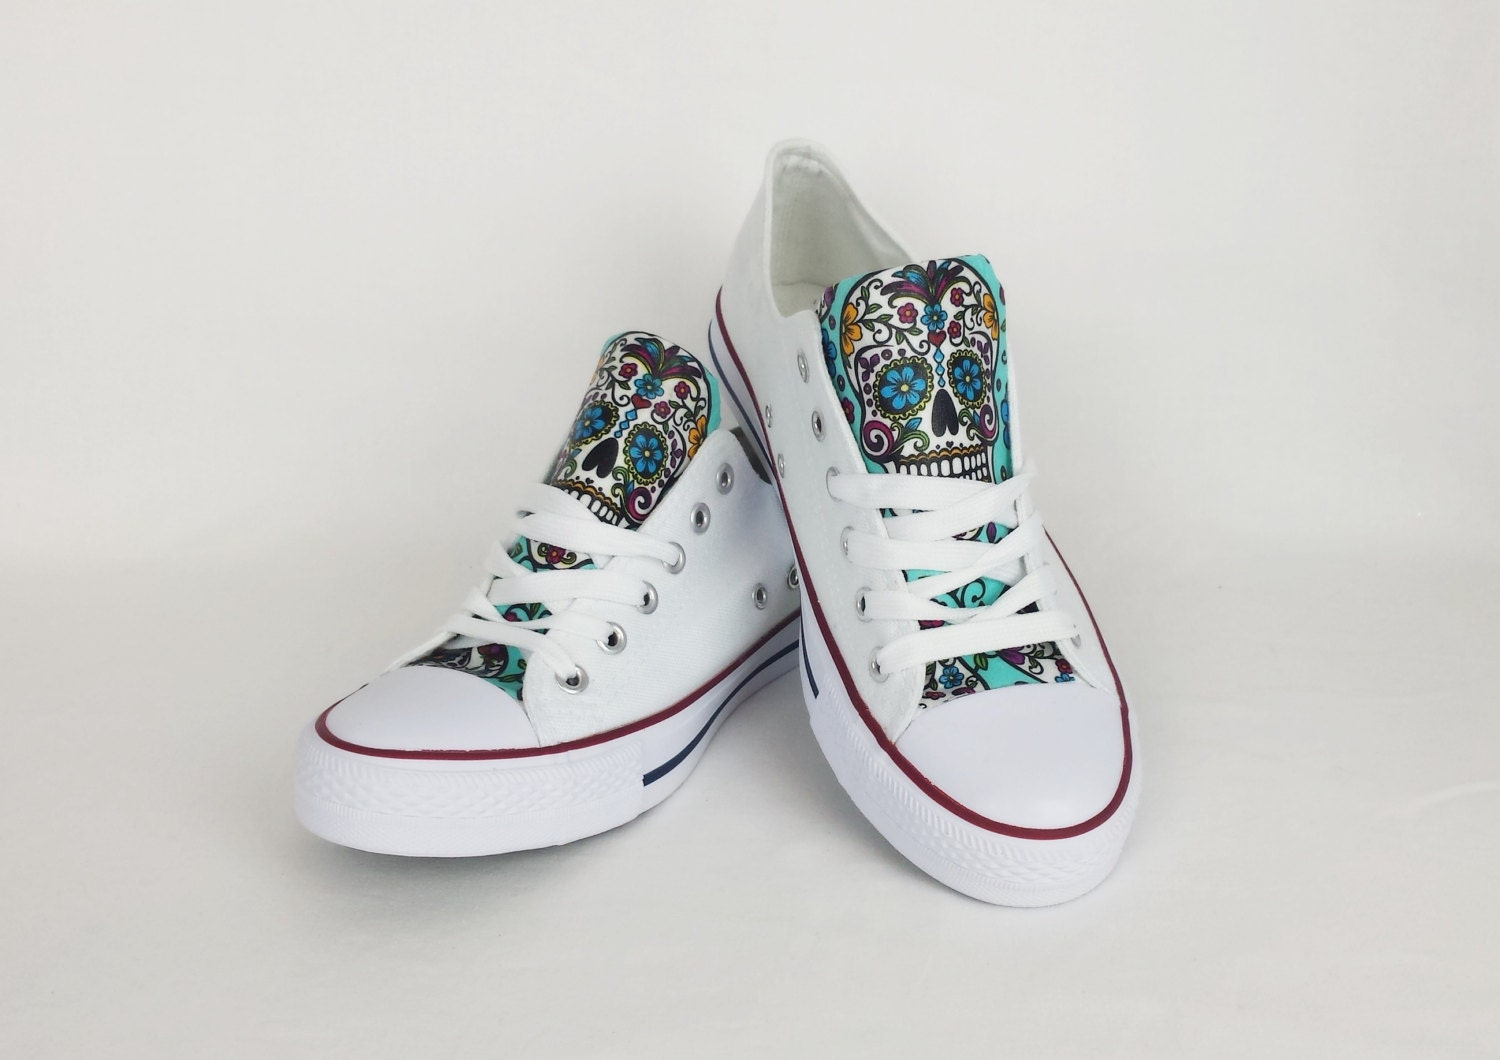 White sugar skull shoes custom converse style by RockYourSole